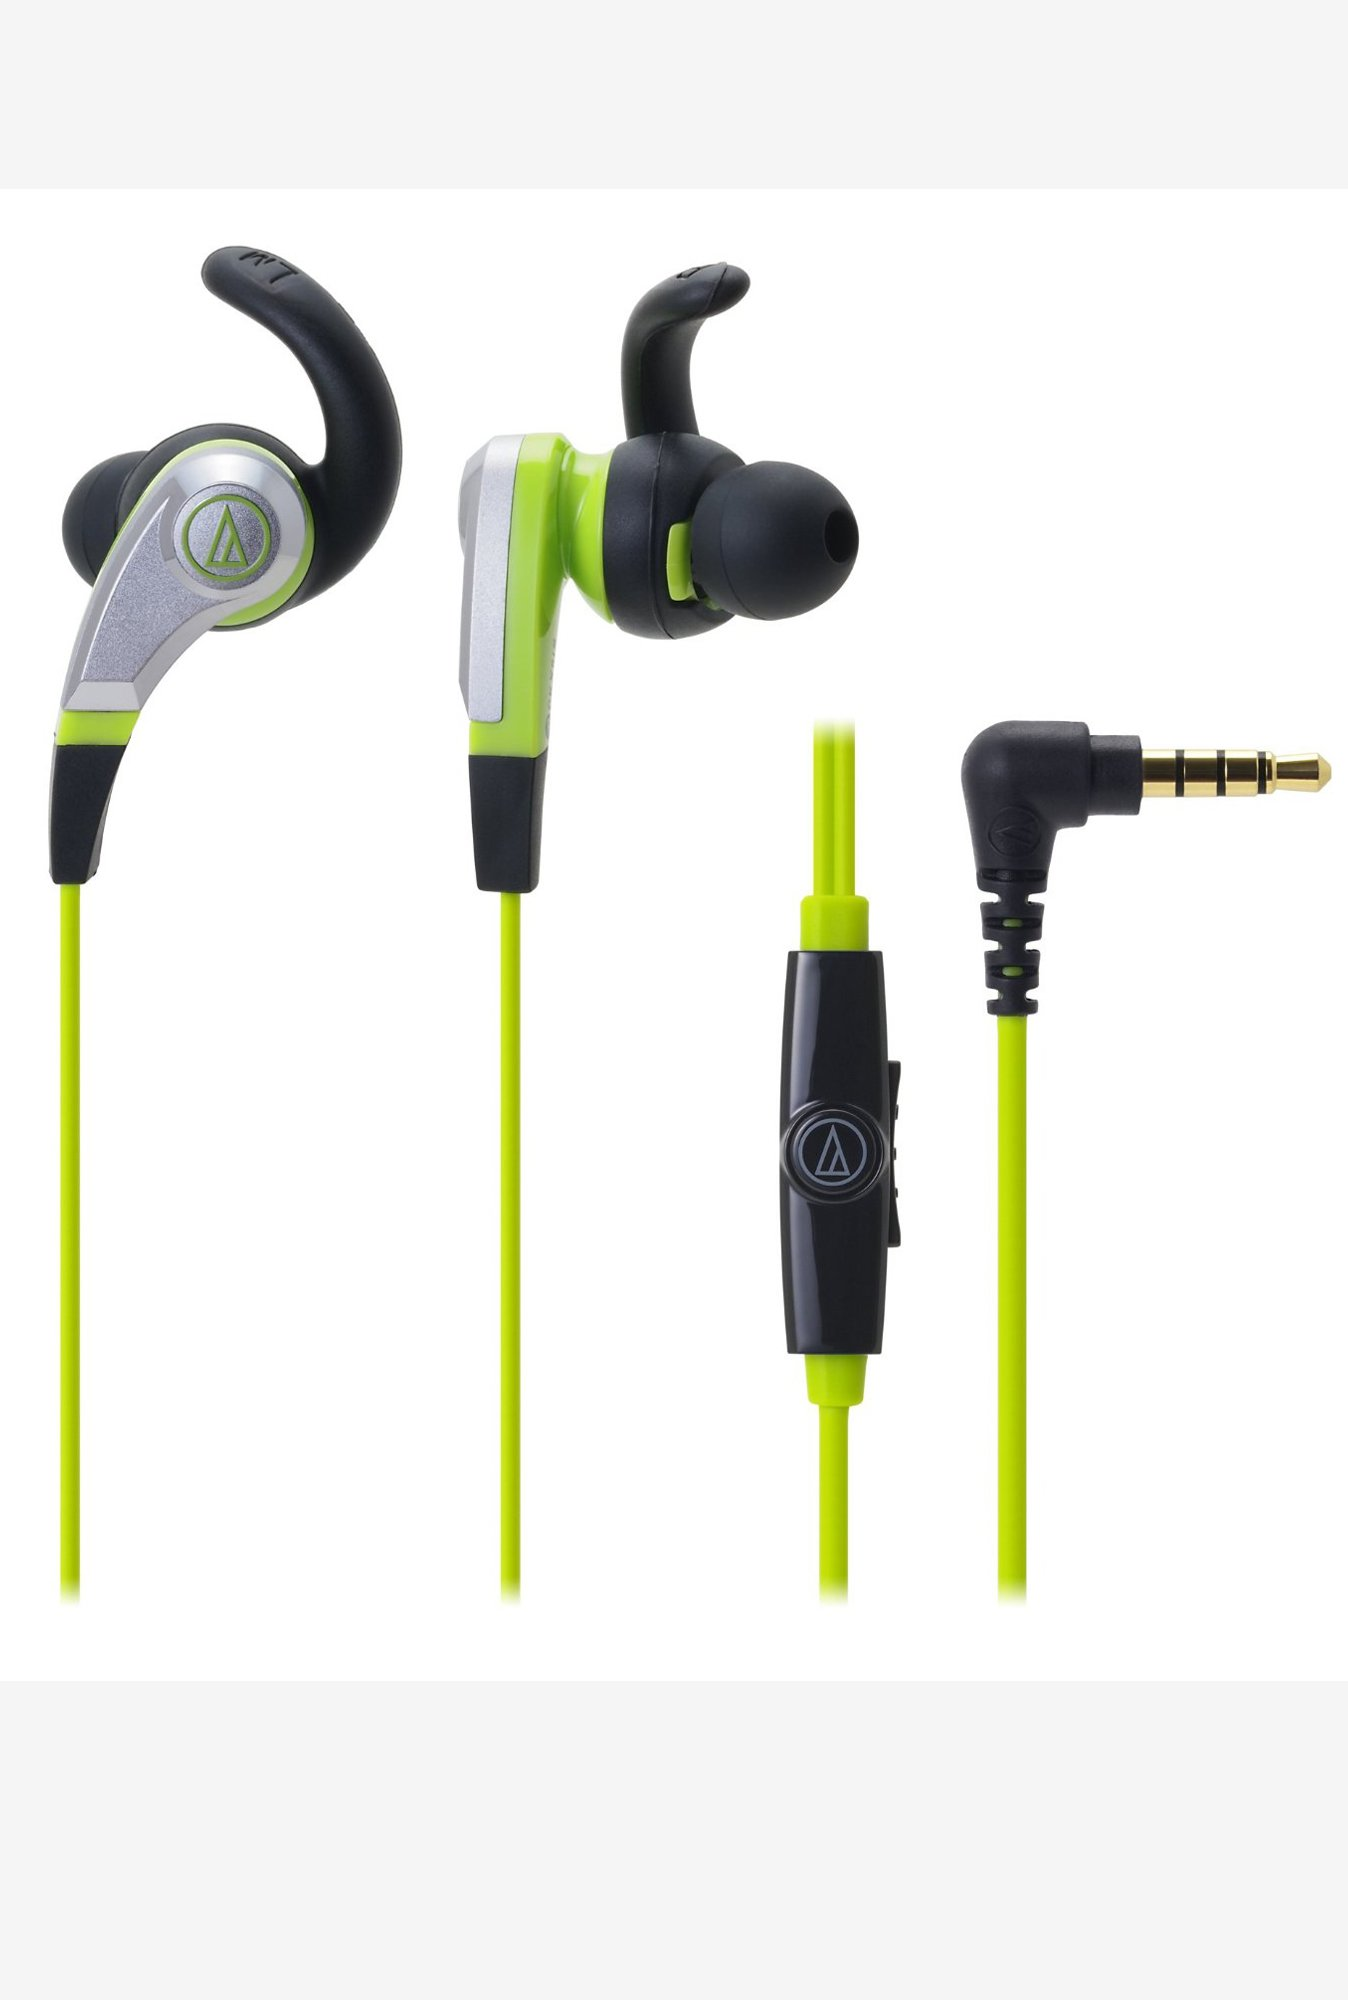 Audio-Technica ATH-CKX5iS SonicFuel In The Ear (Green)